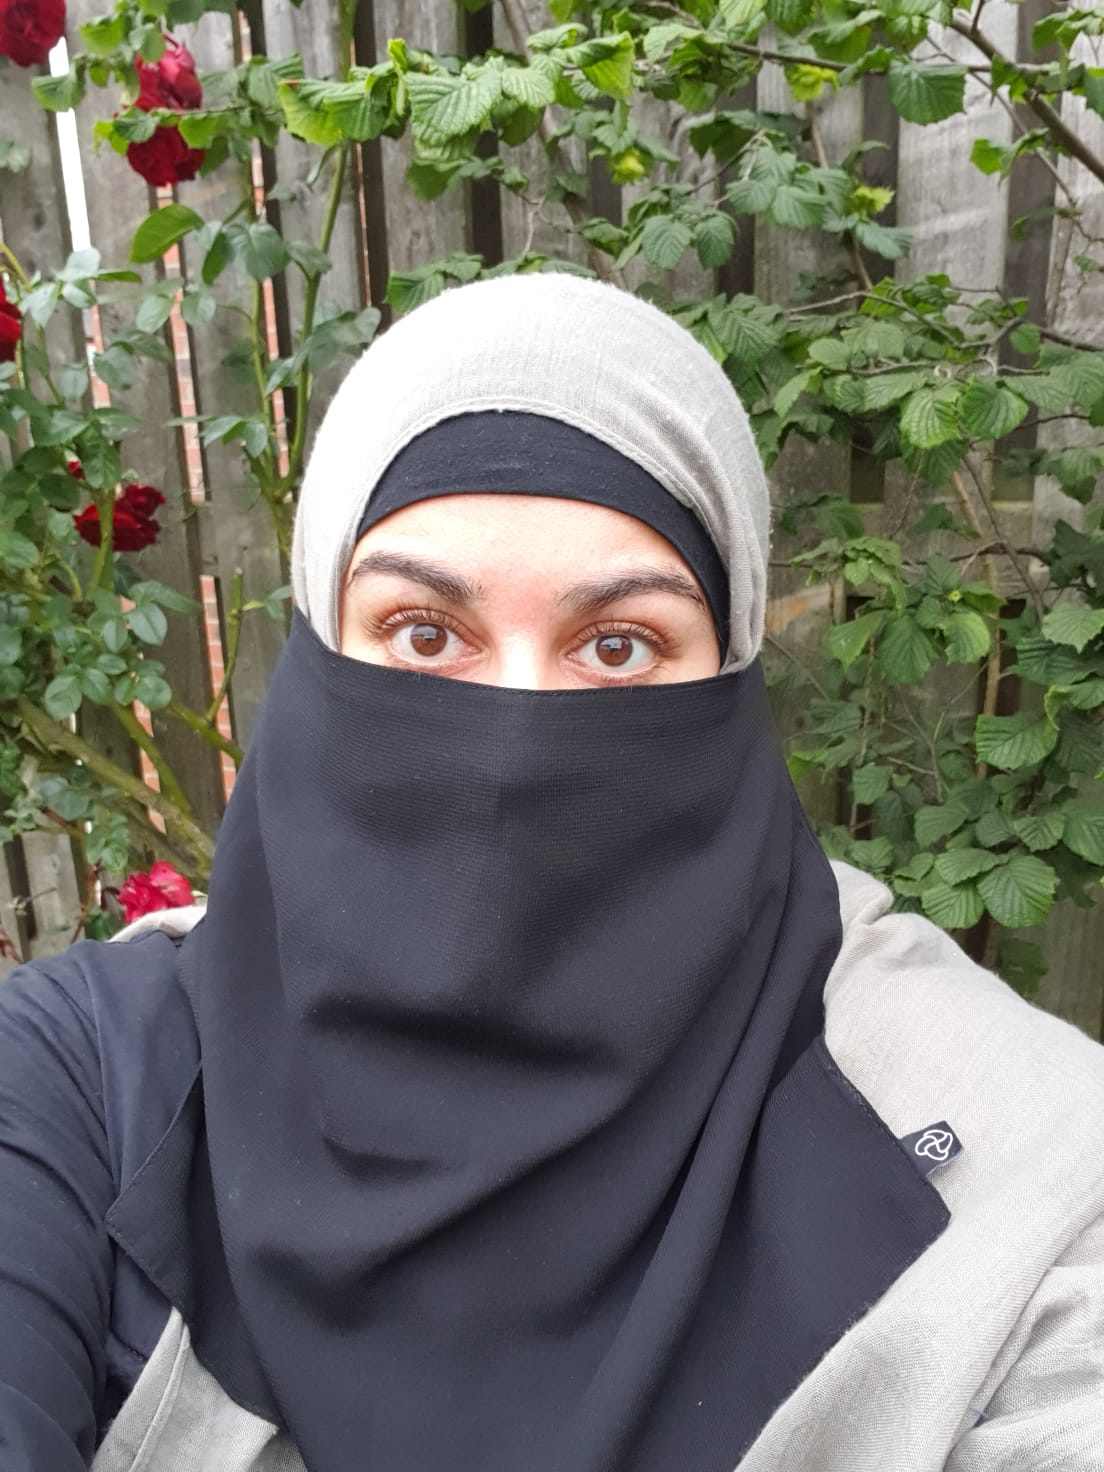 Profile picture of Miss Veiled